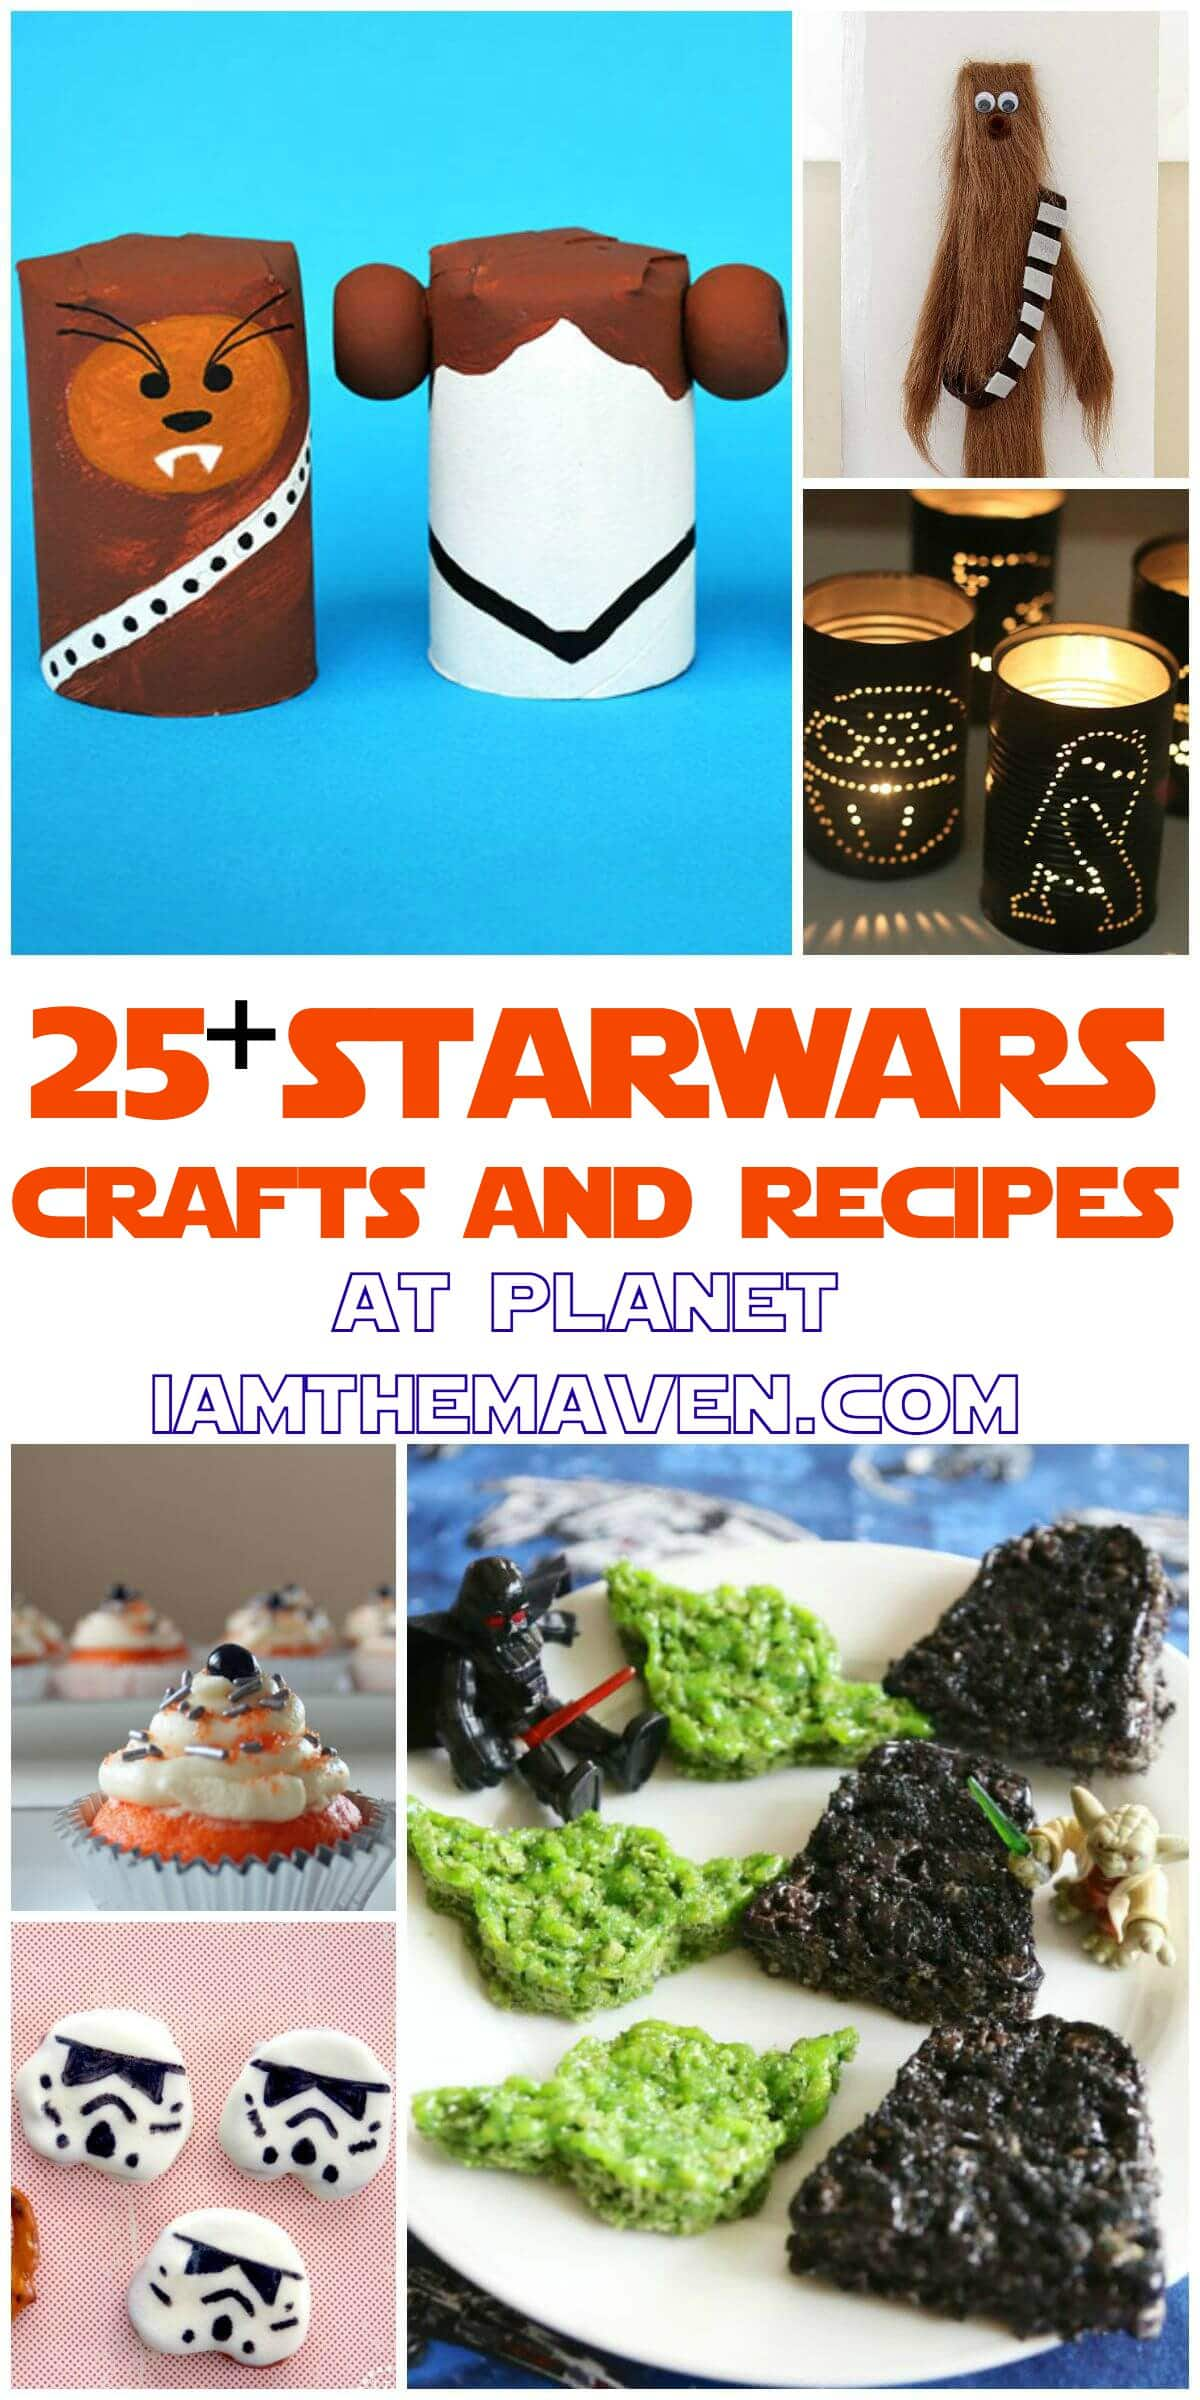 Any good Padawan in training along with their Jedi Master will love this collection of Star Wars Crafts and Recipes. .